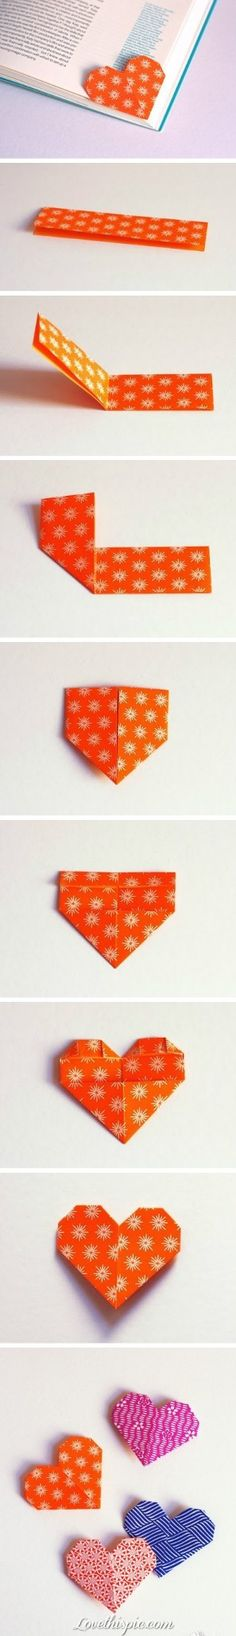 DIY Heart Bookmarks Pictures, Photos, and Images for Facebook, Tumblr, Pinterest, and Twitter